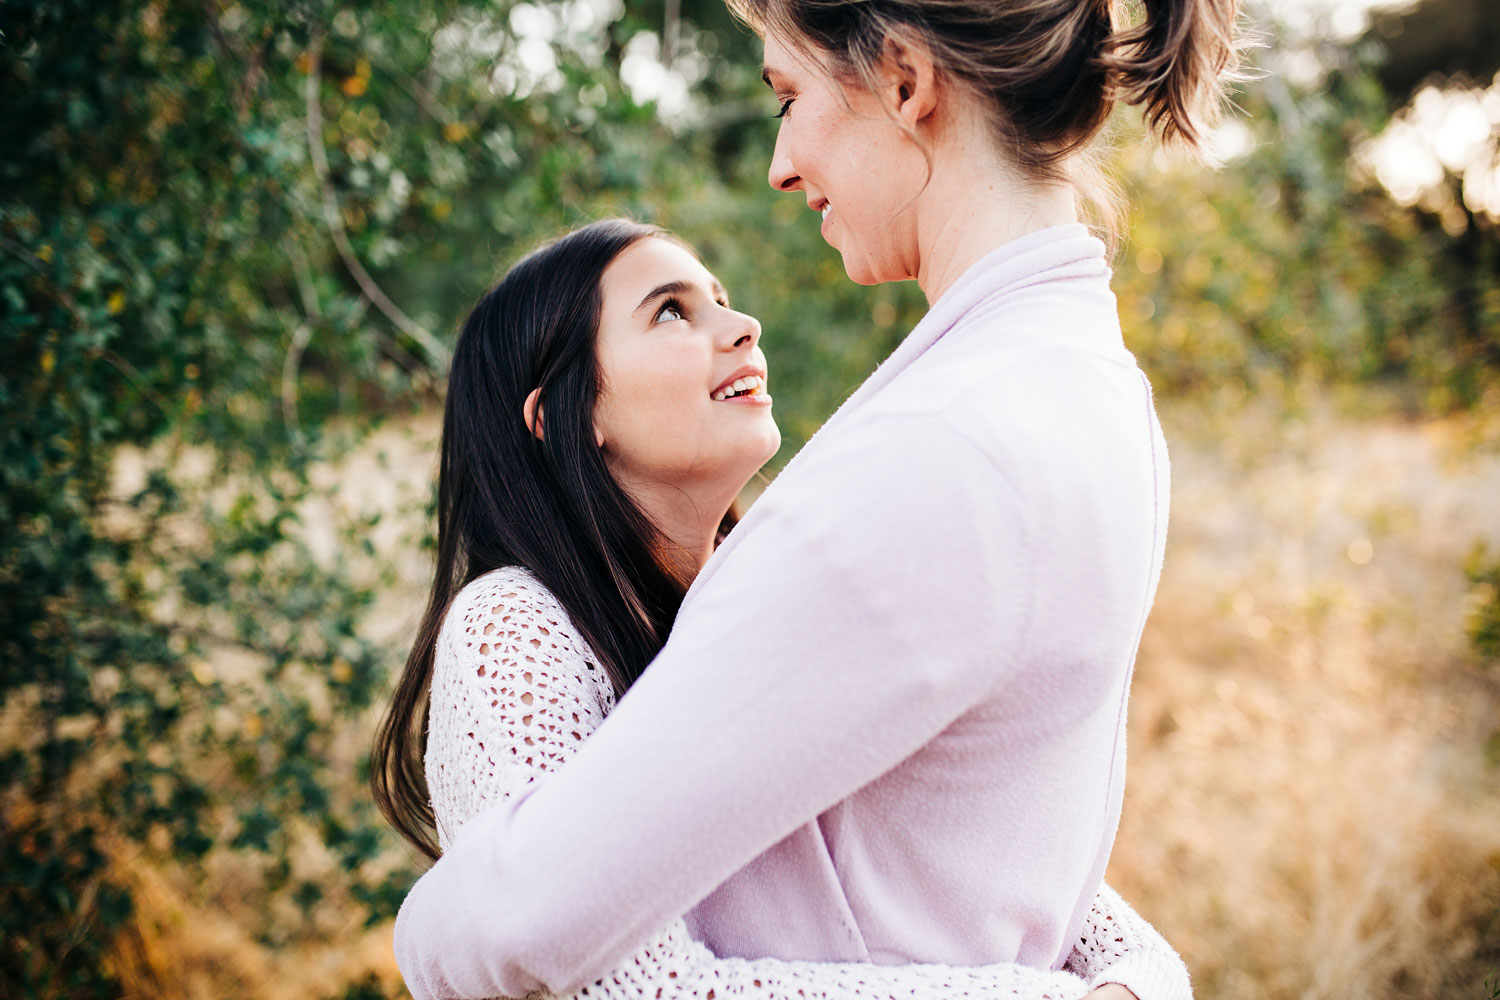 A mother and daughter embrace and look at each other during a photo session with their photographer, Amy Wright, who specializes in lifestyle newborn and family photography in the Sacramento and Roseville, California area.